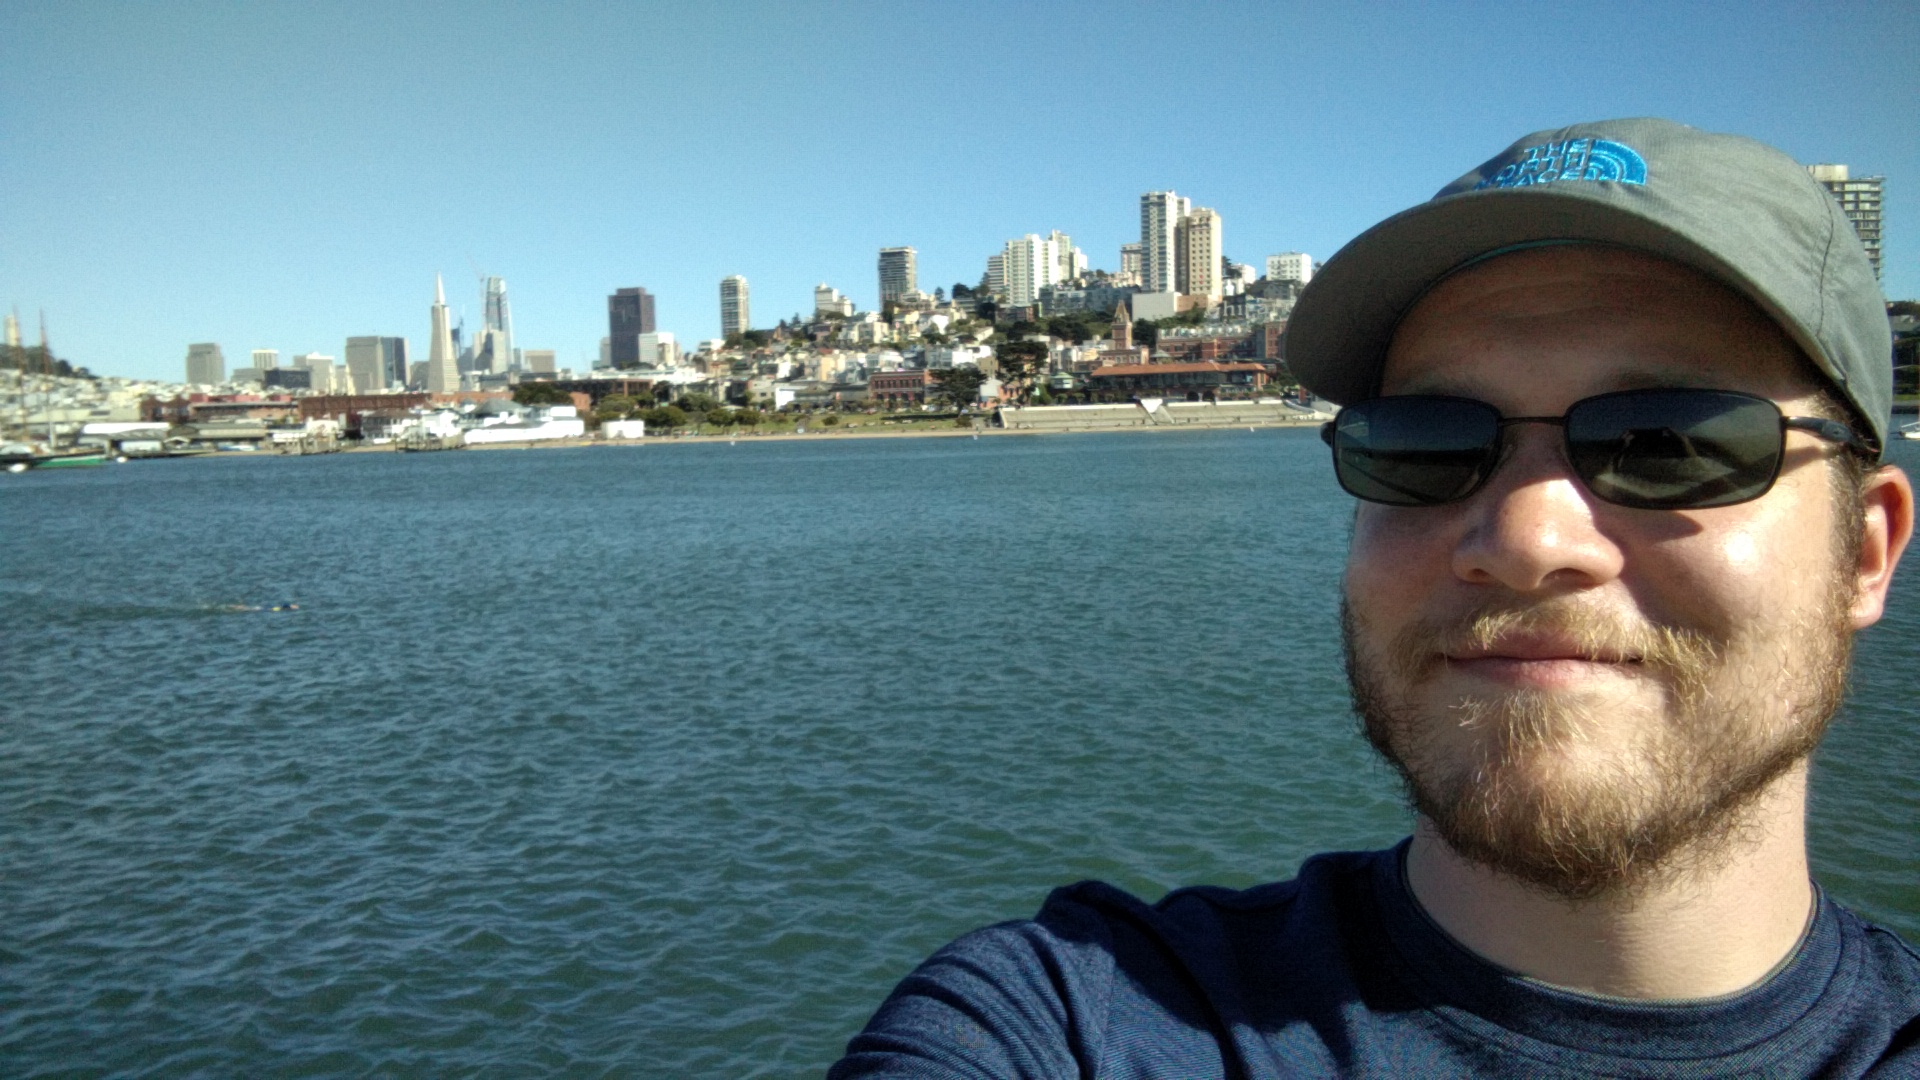 San Francisco from that big curved pier in San Francisco.